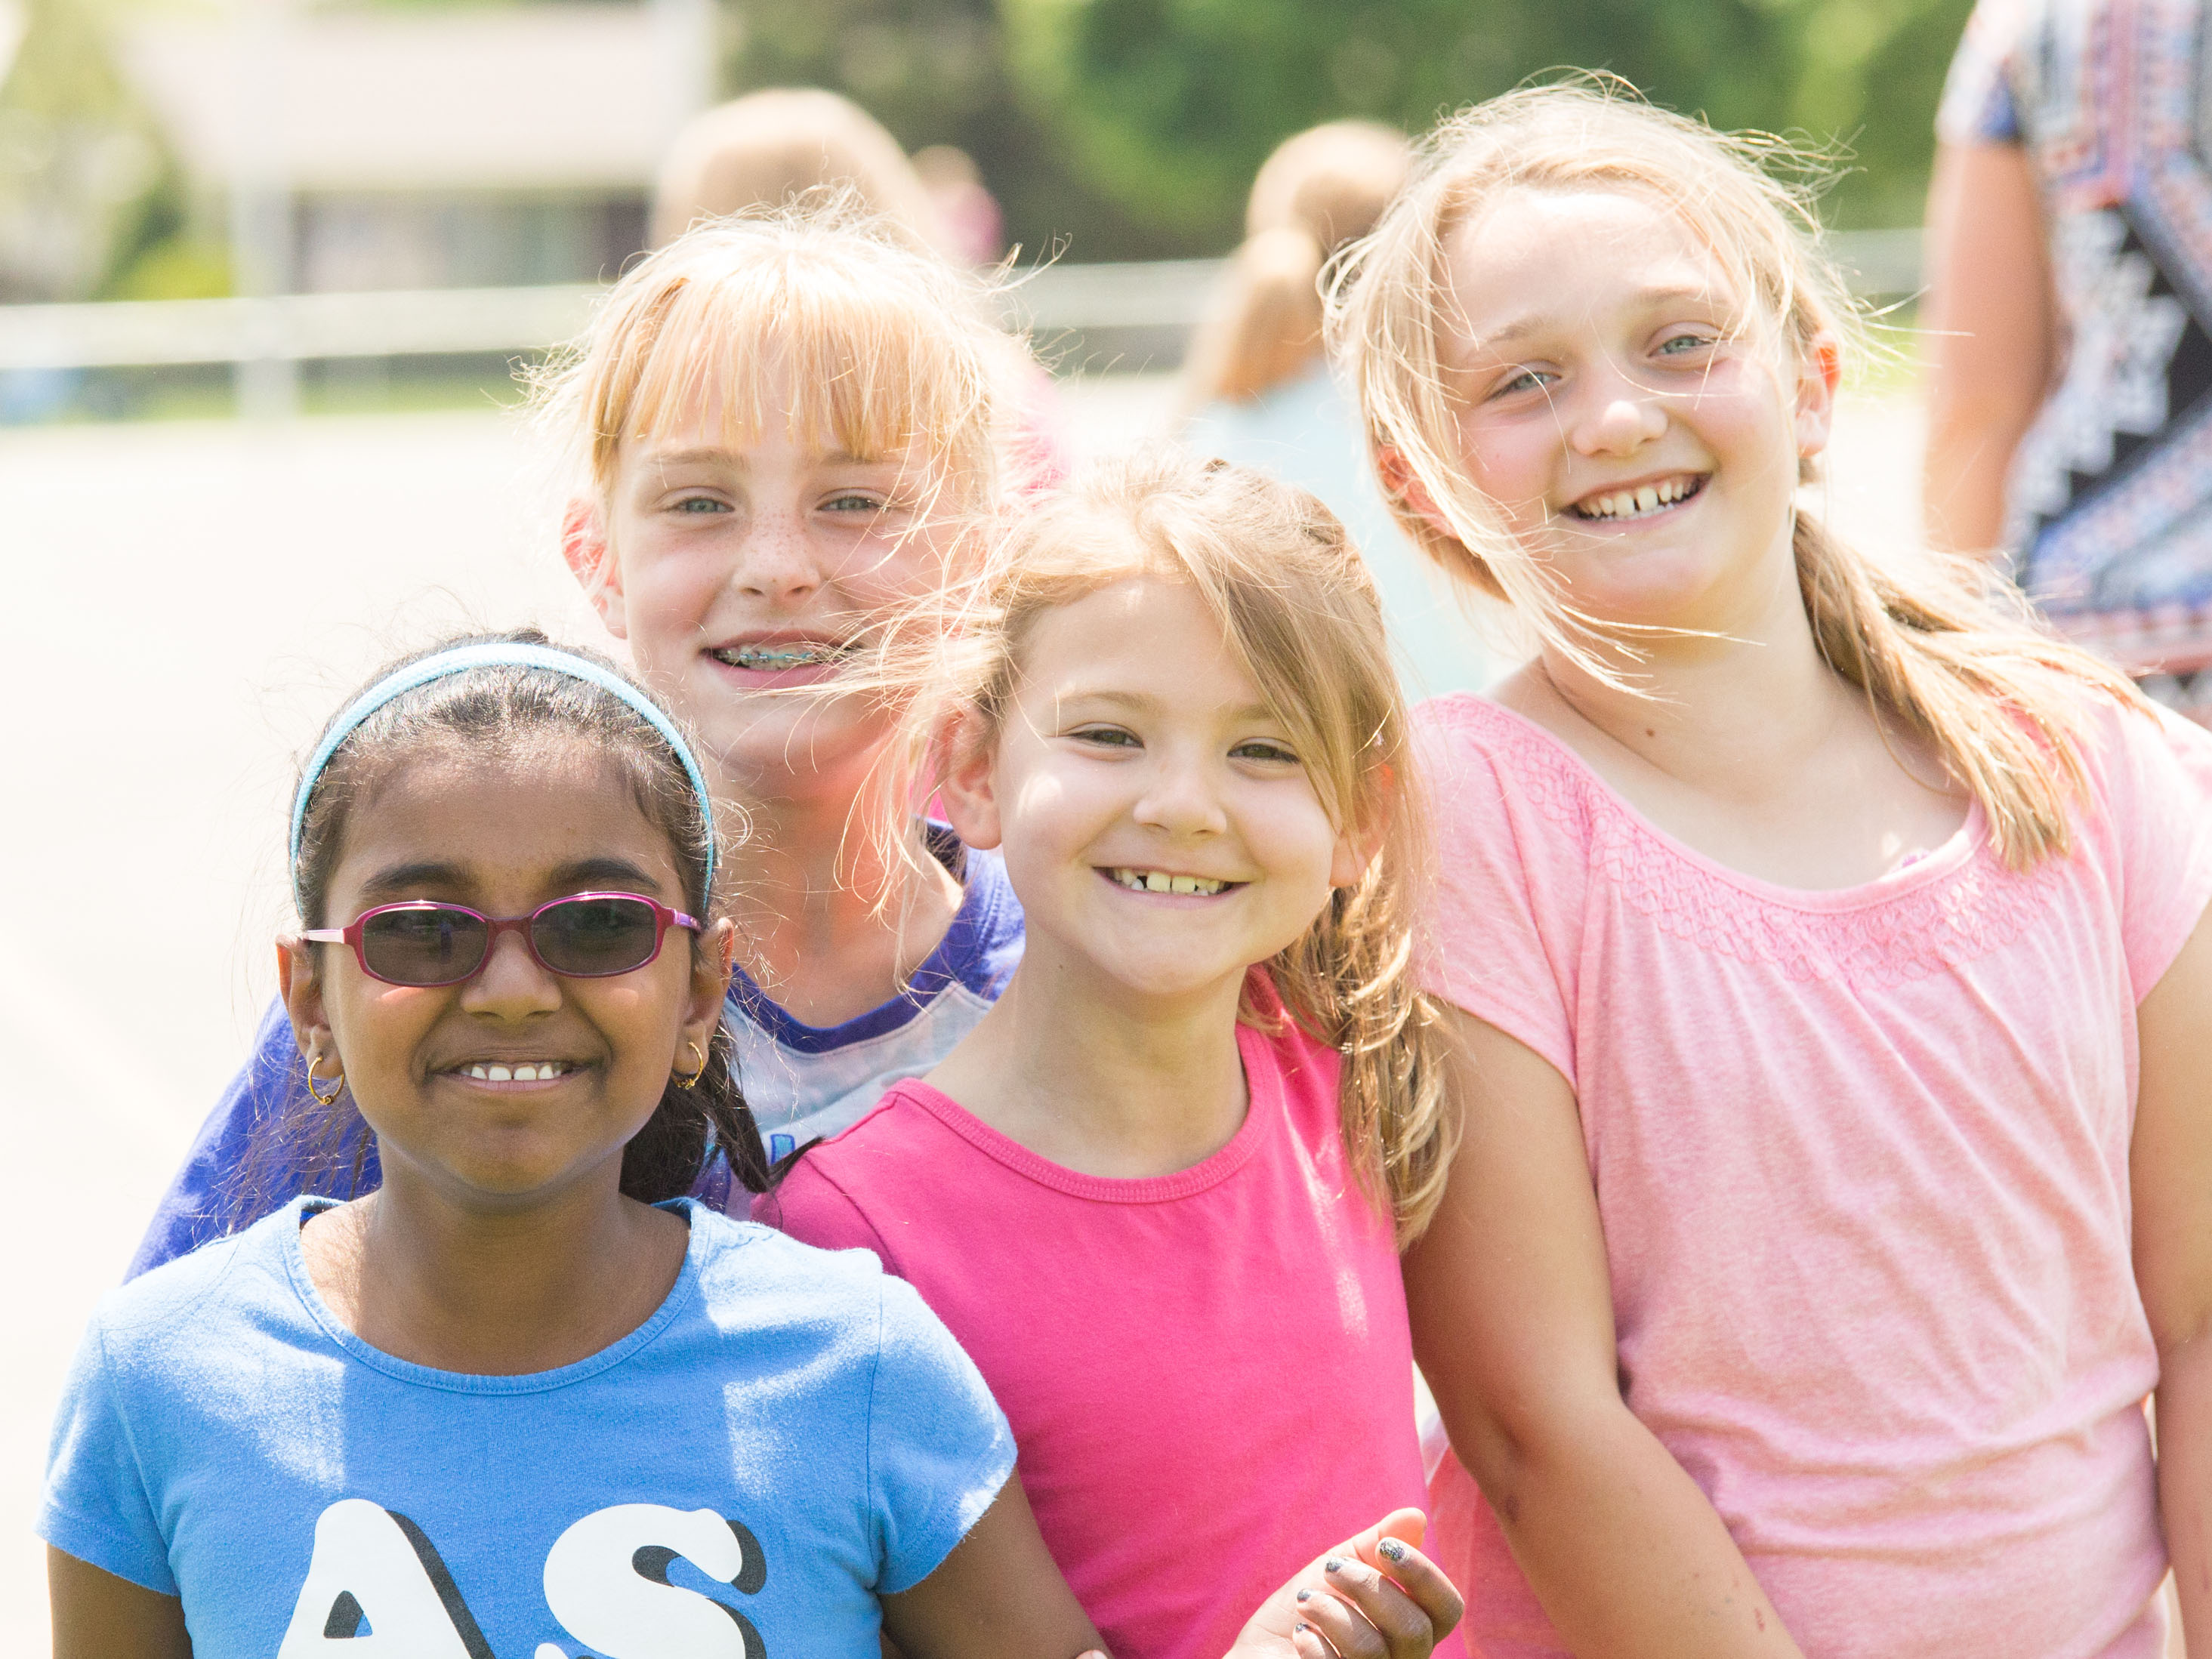 Students Smile Together on Playground